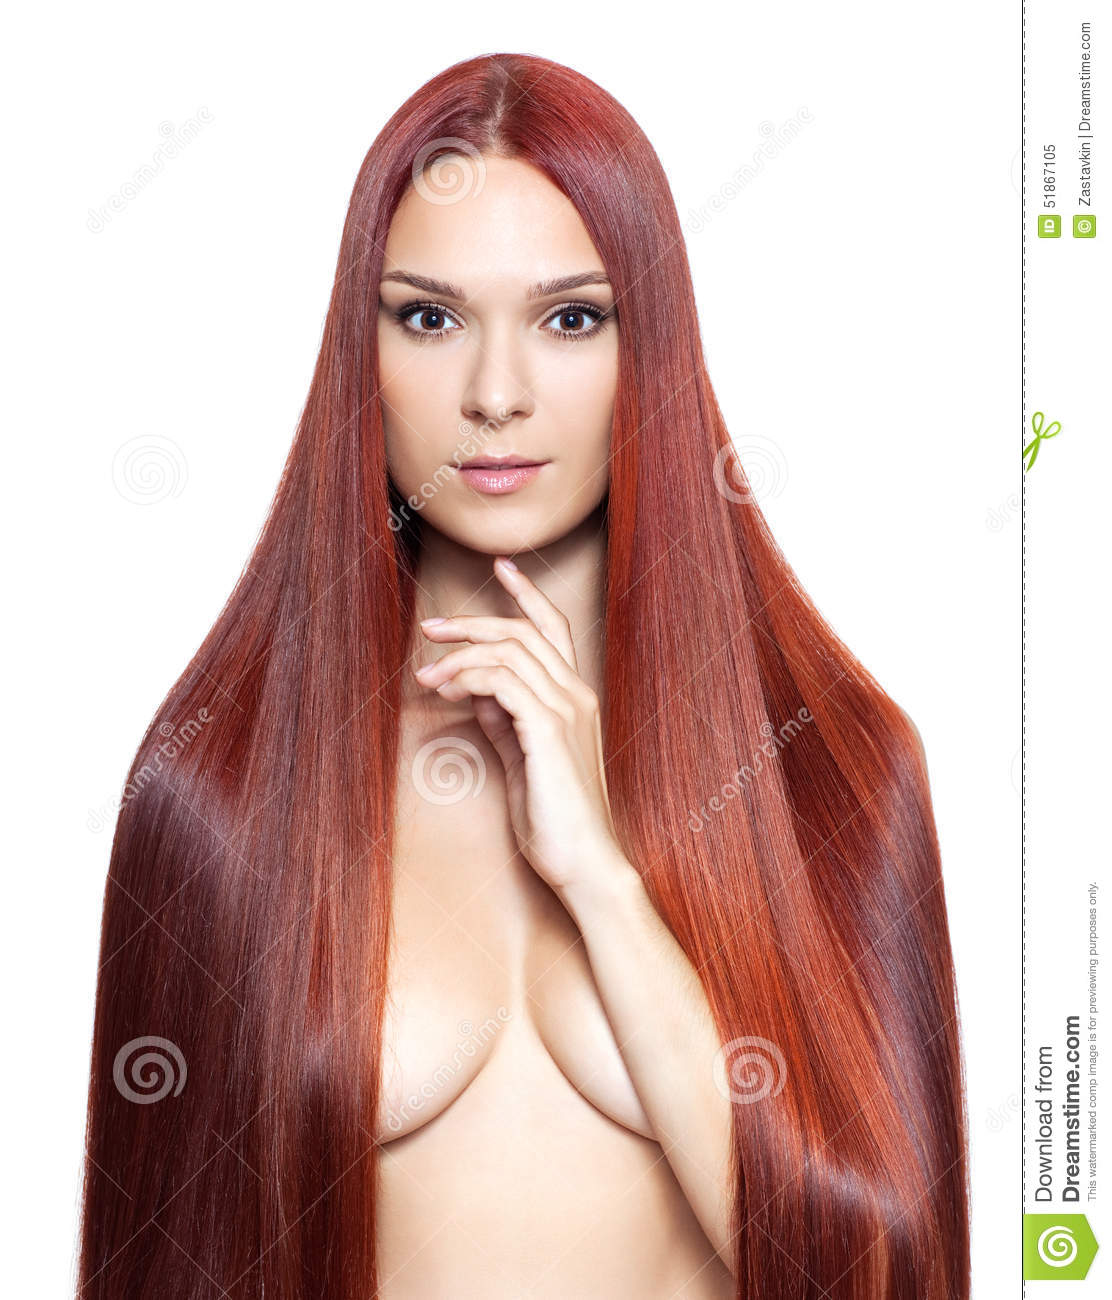 Nude Women With Hair 24